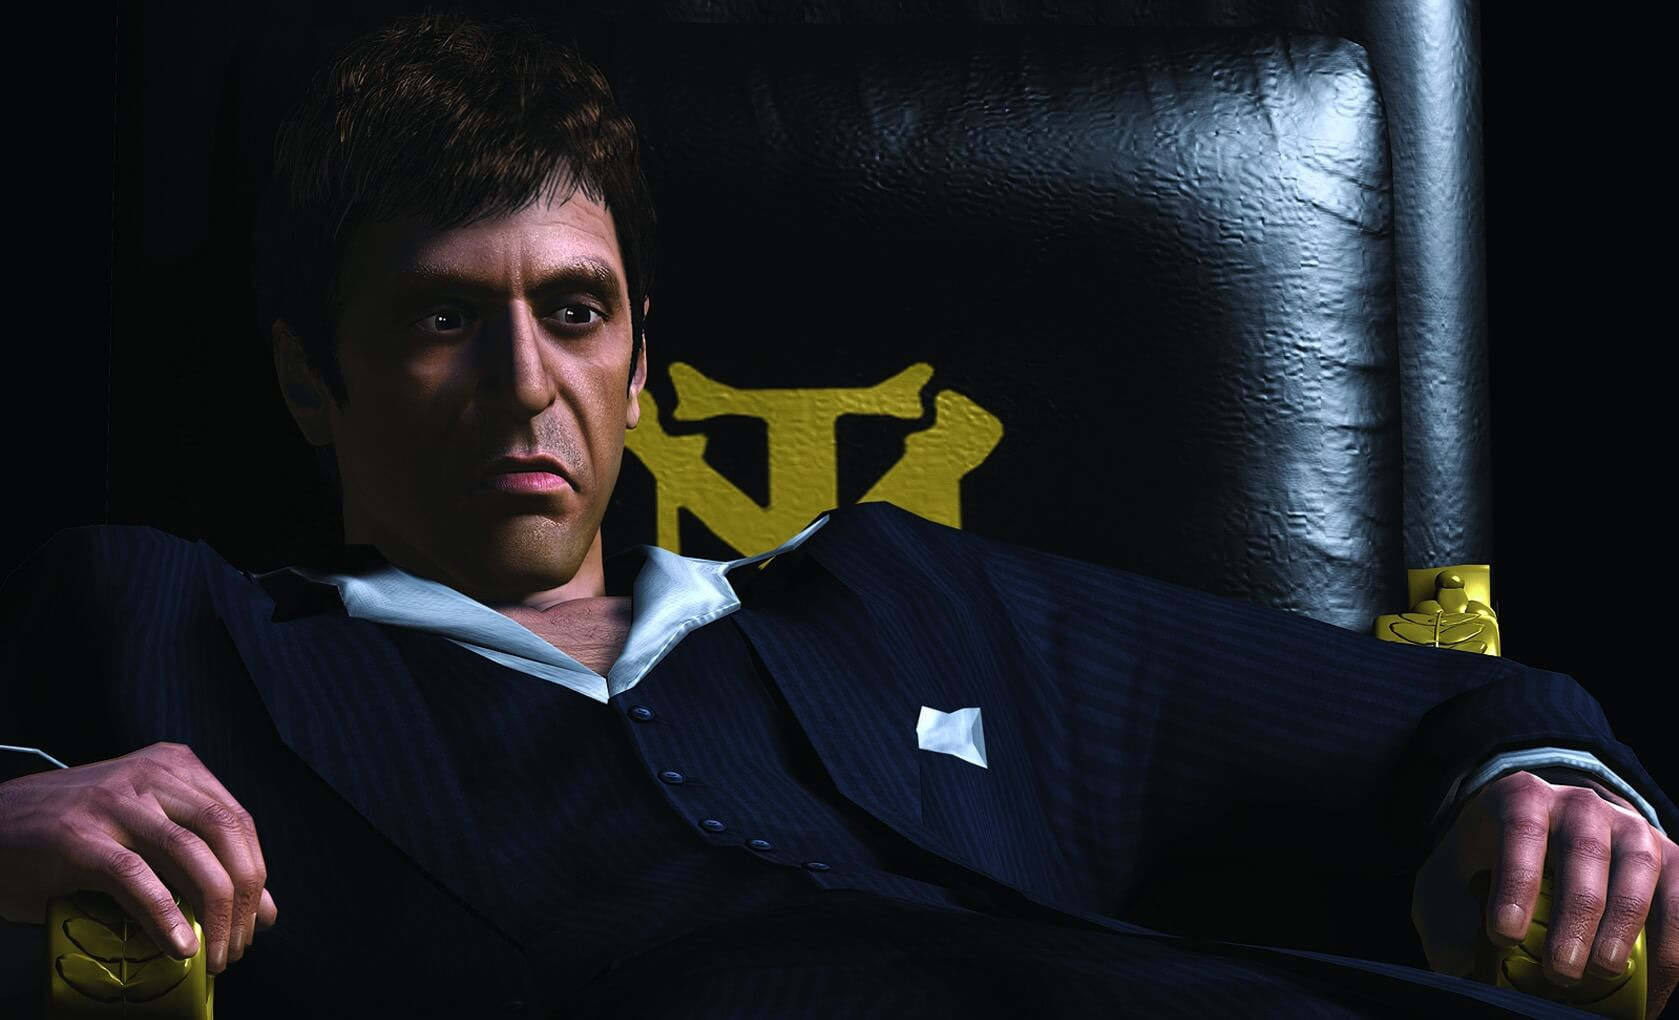 Scarface The World is Yours Fan Patch corrige falhas gráficas, melhora ...